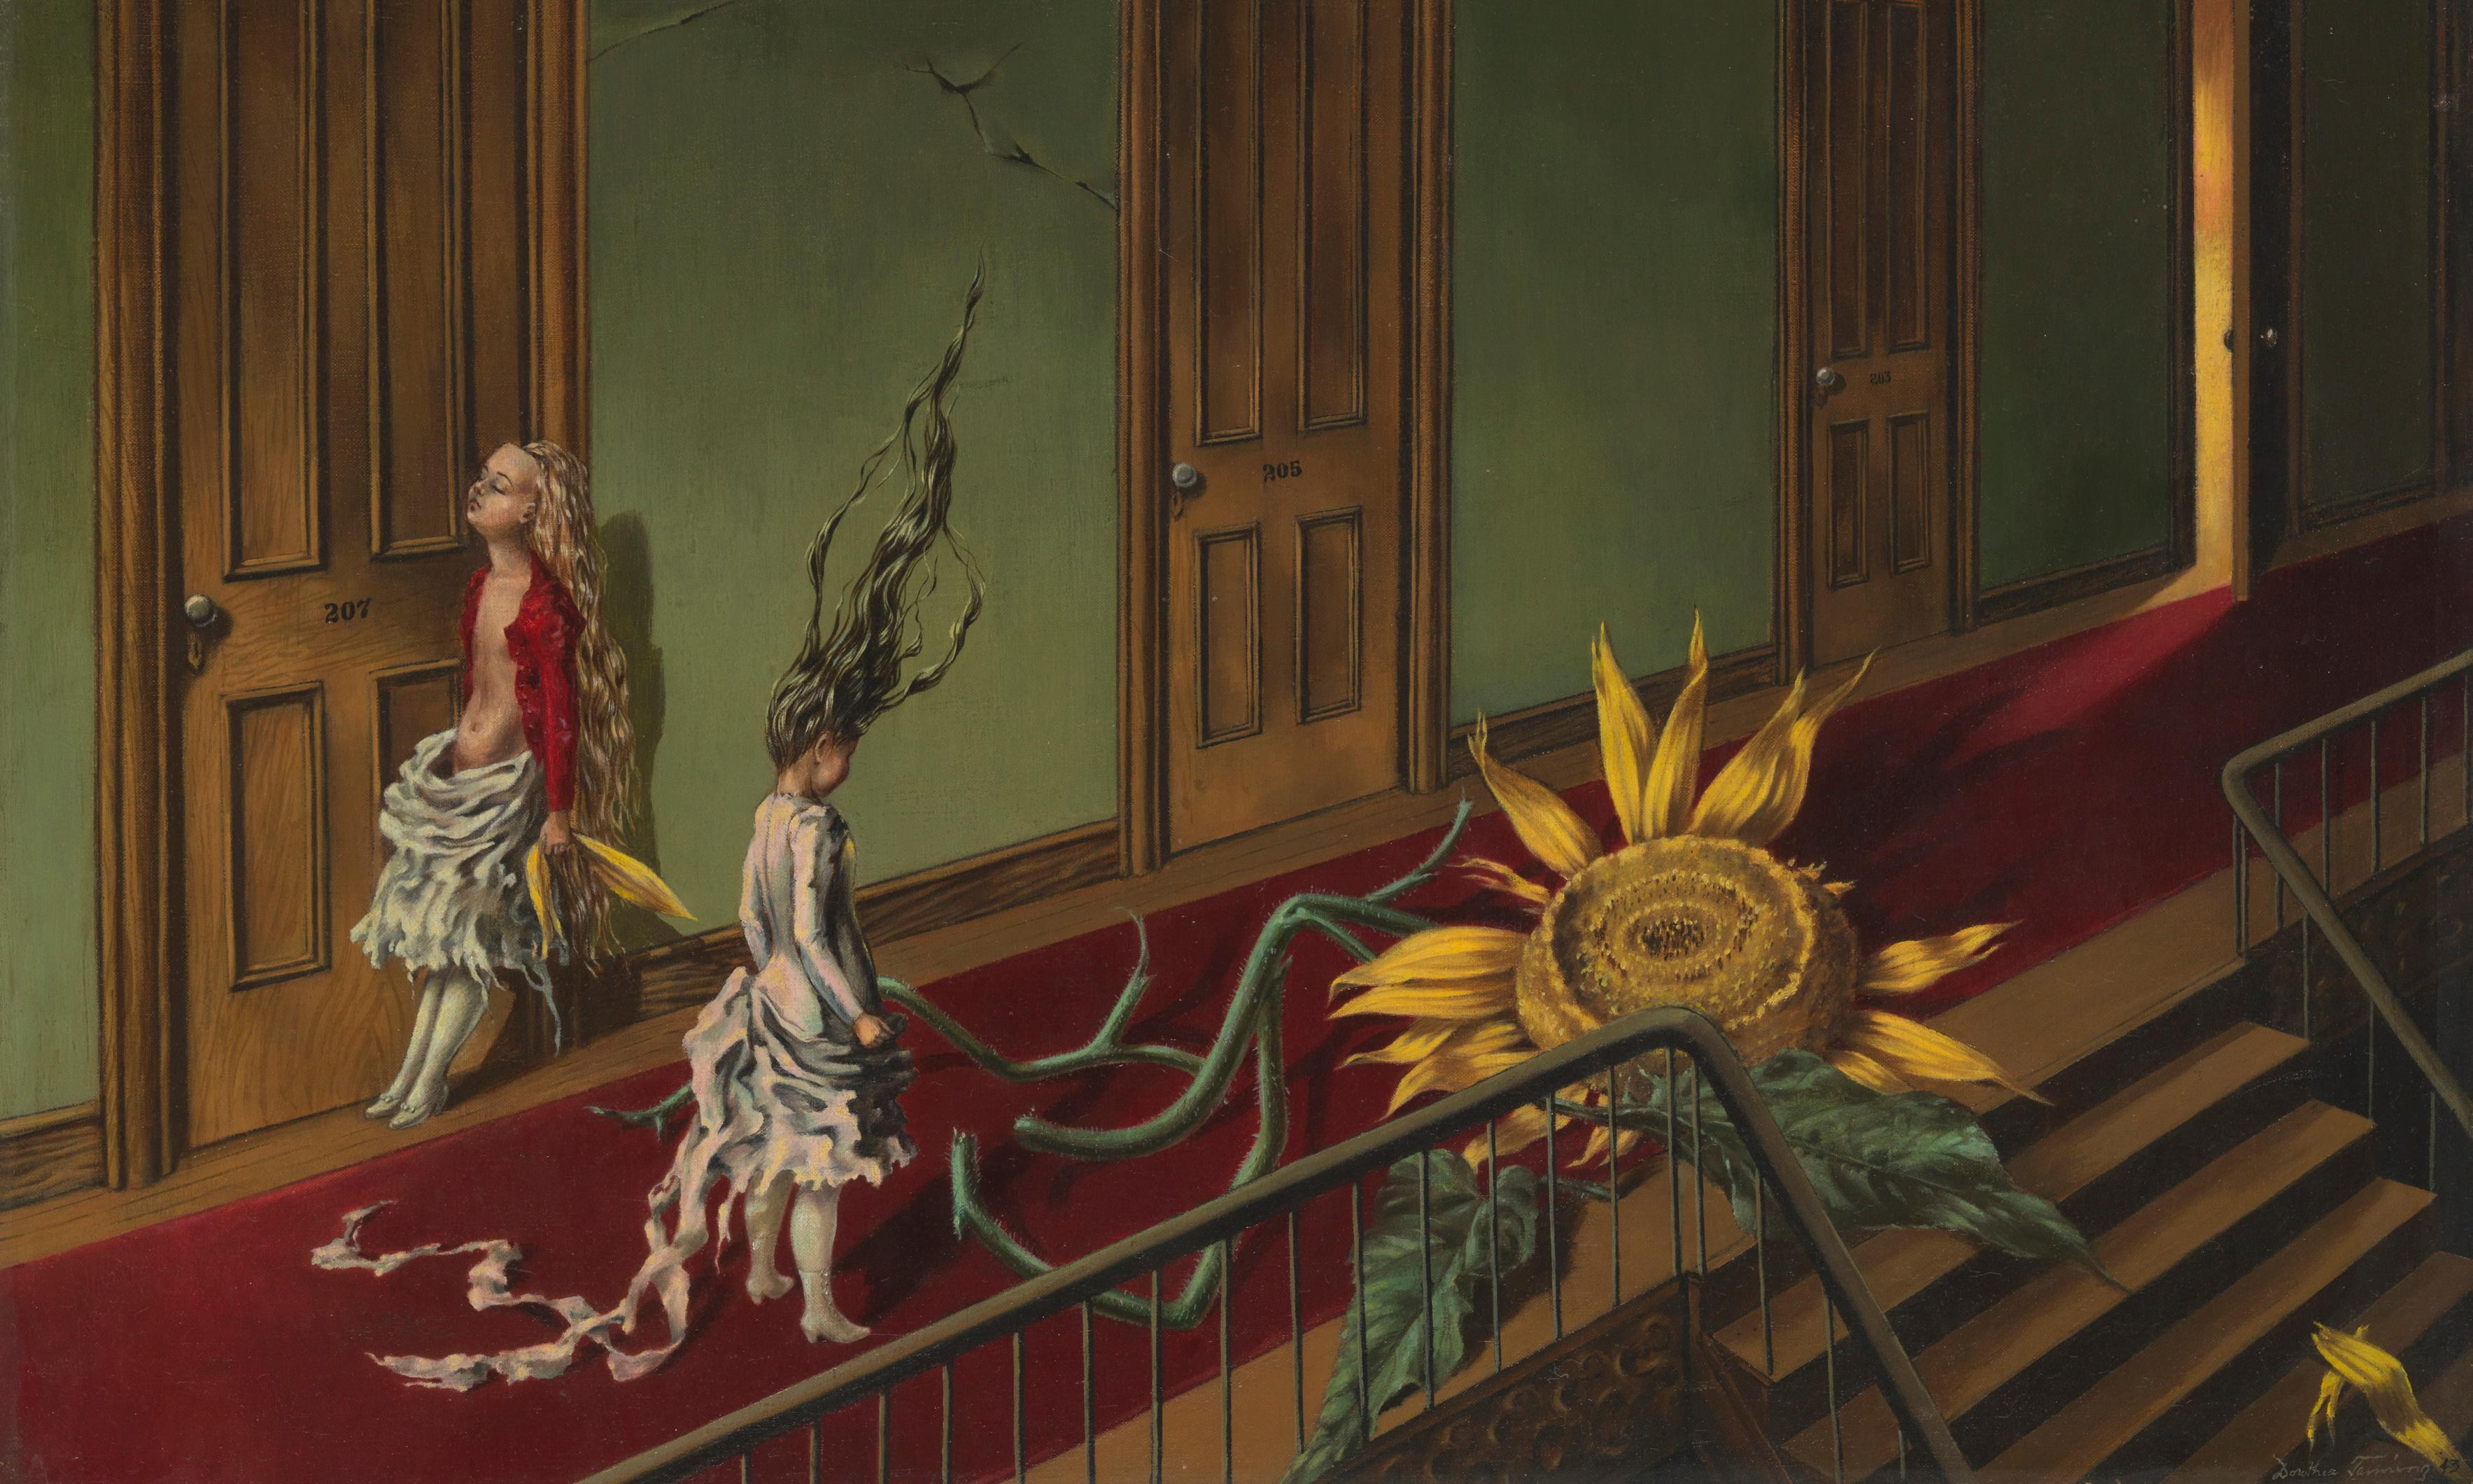 Dangerous appetites: the weird, wild world of Dorothea Tanning